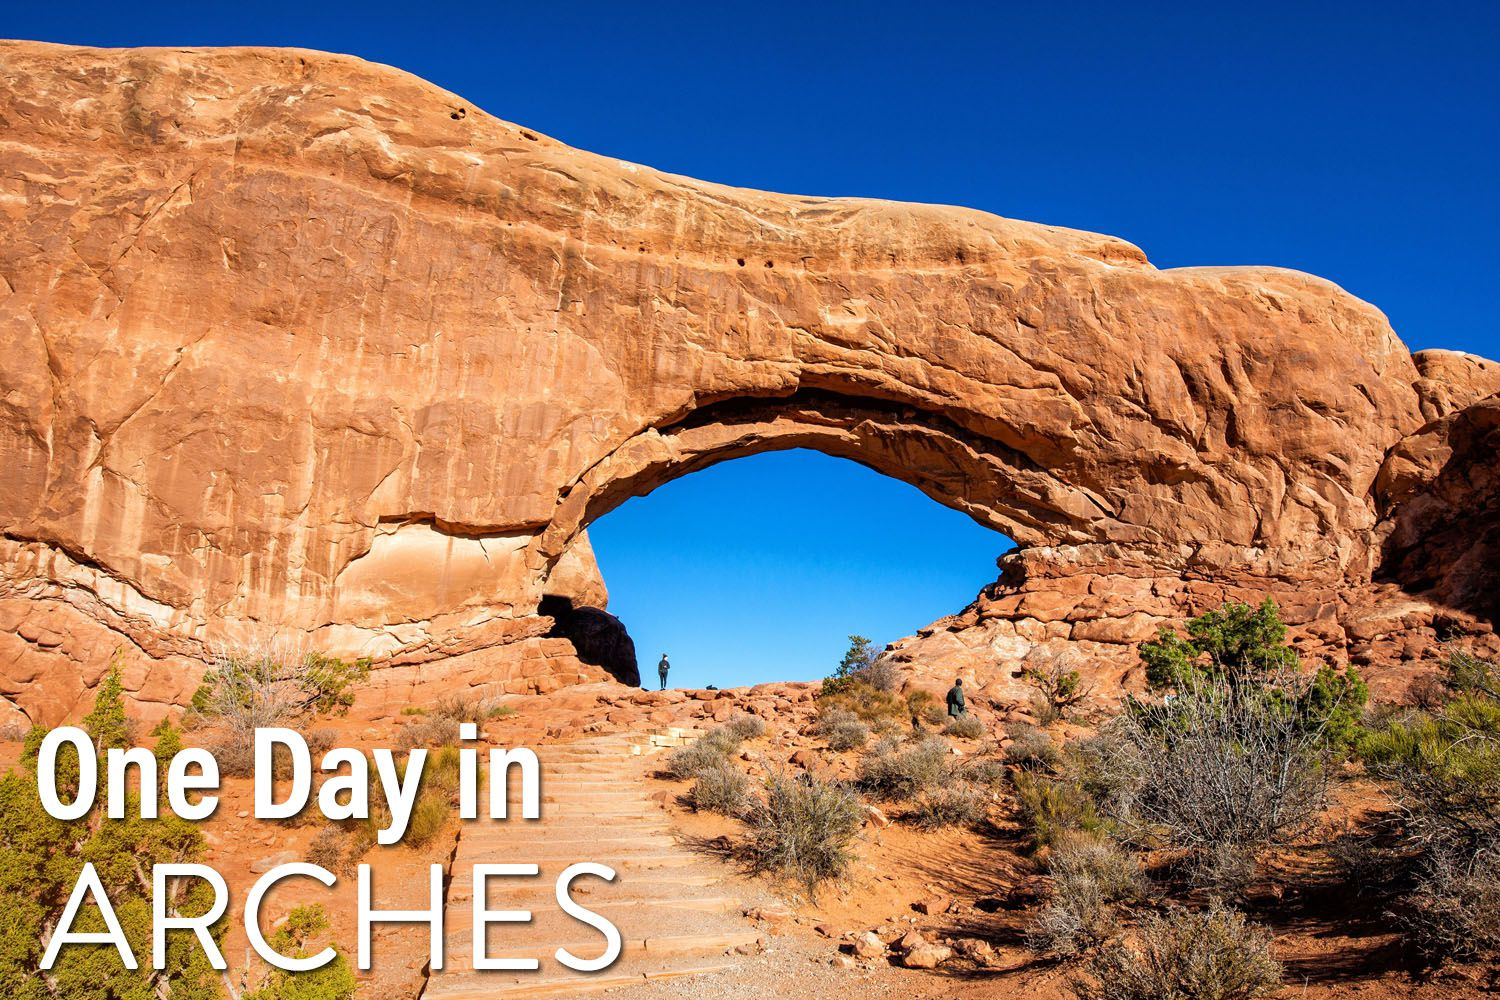 One Day in Arches